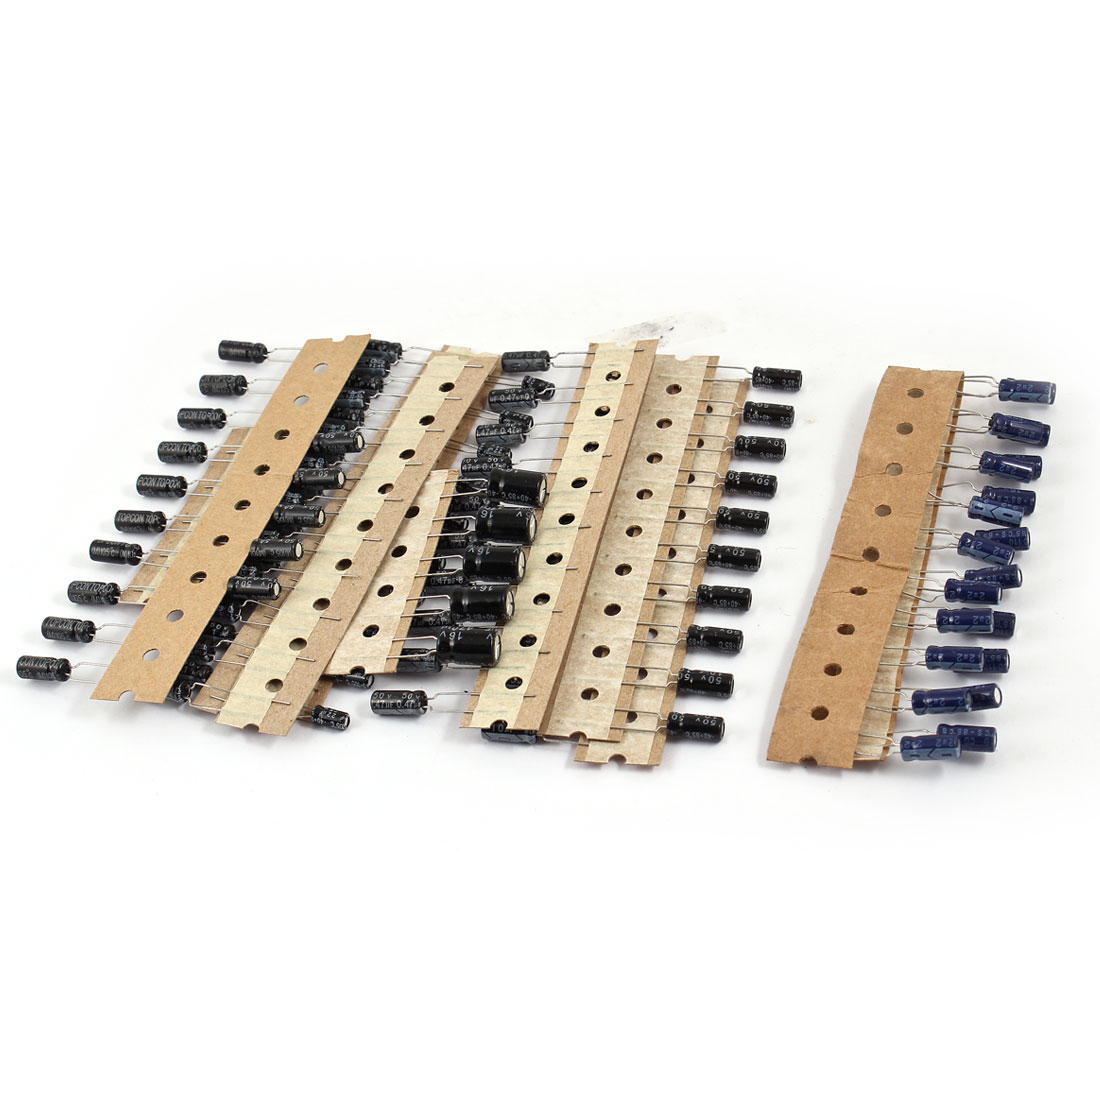 100 Pieces 8 Value 0.22uF-470uF Electrolytic Capacitors Assortment Kit Set